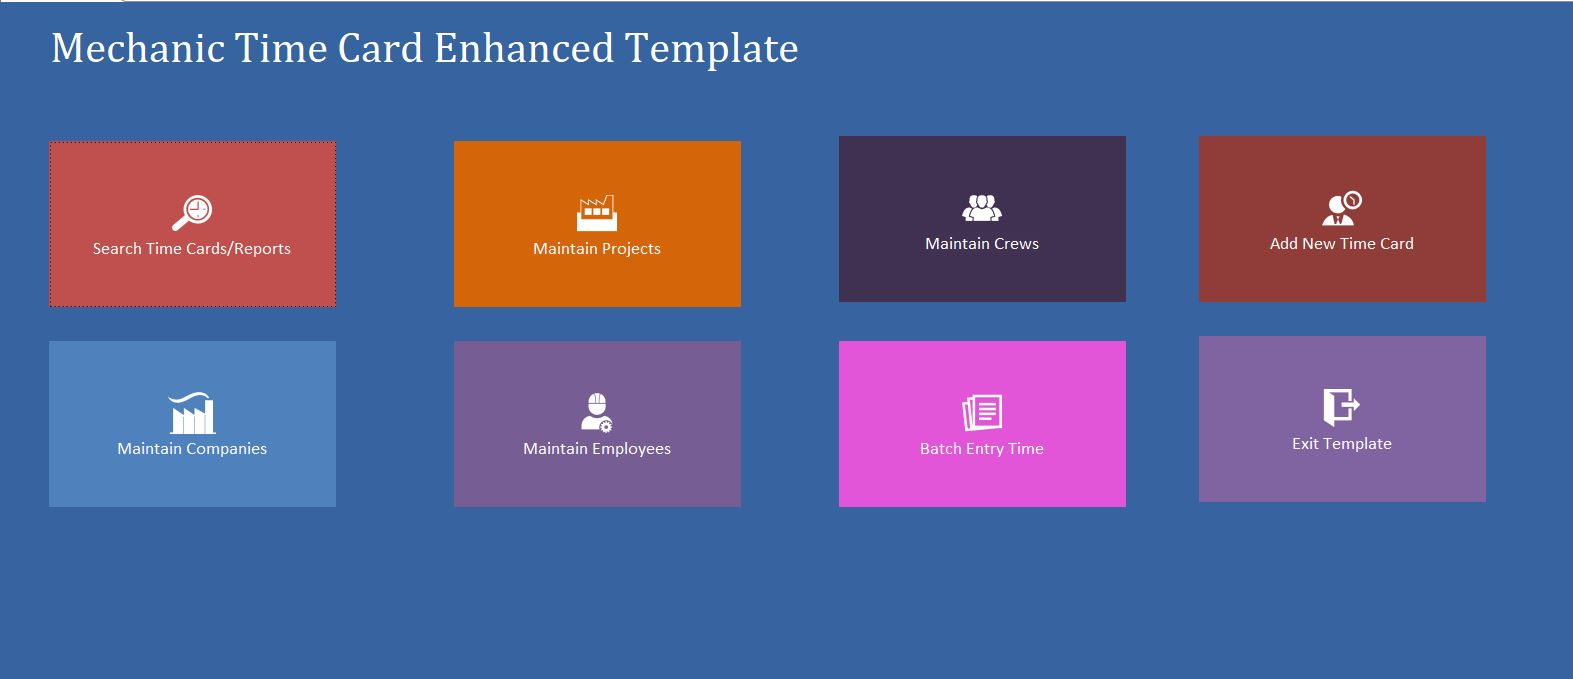 Enhanced Mechanic Consultant Time Card Template | Time Card Database